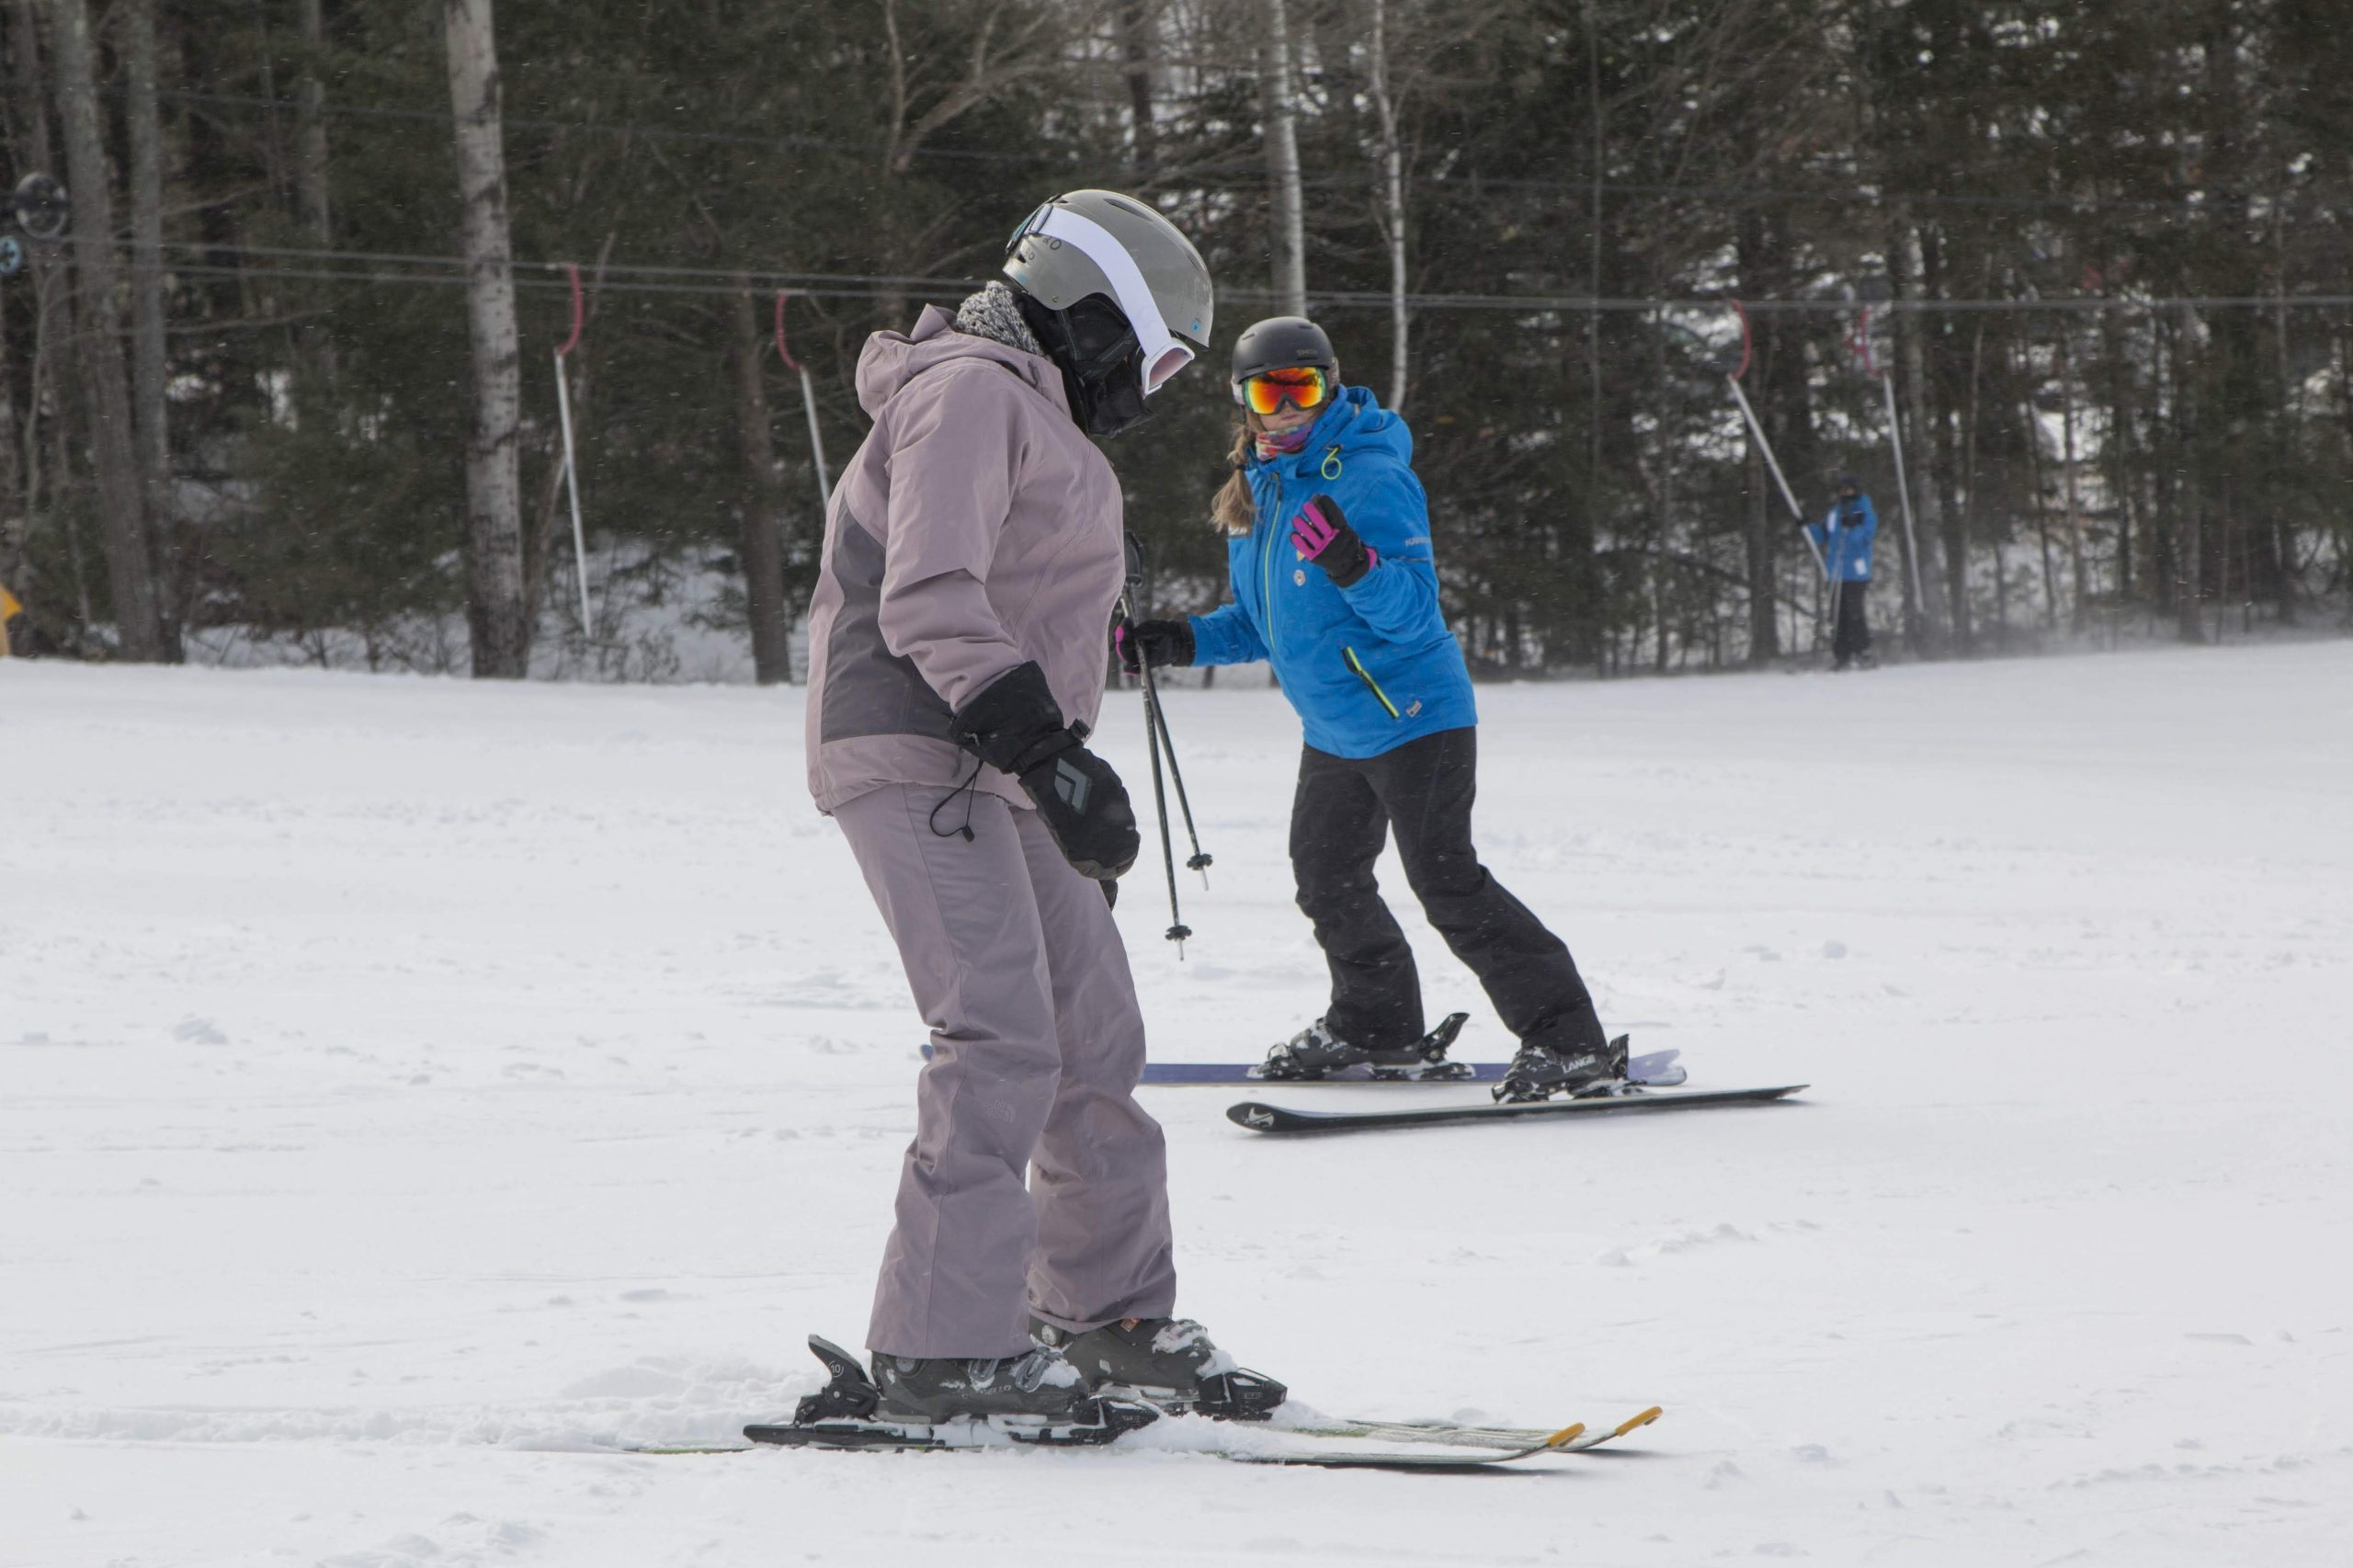 learning to turn in a ski lesson